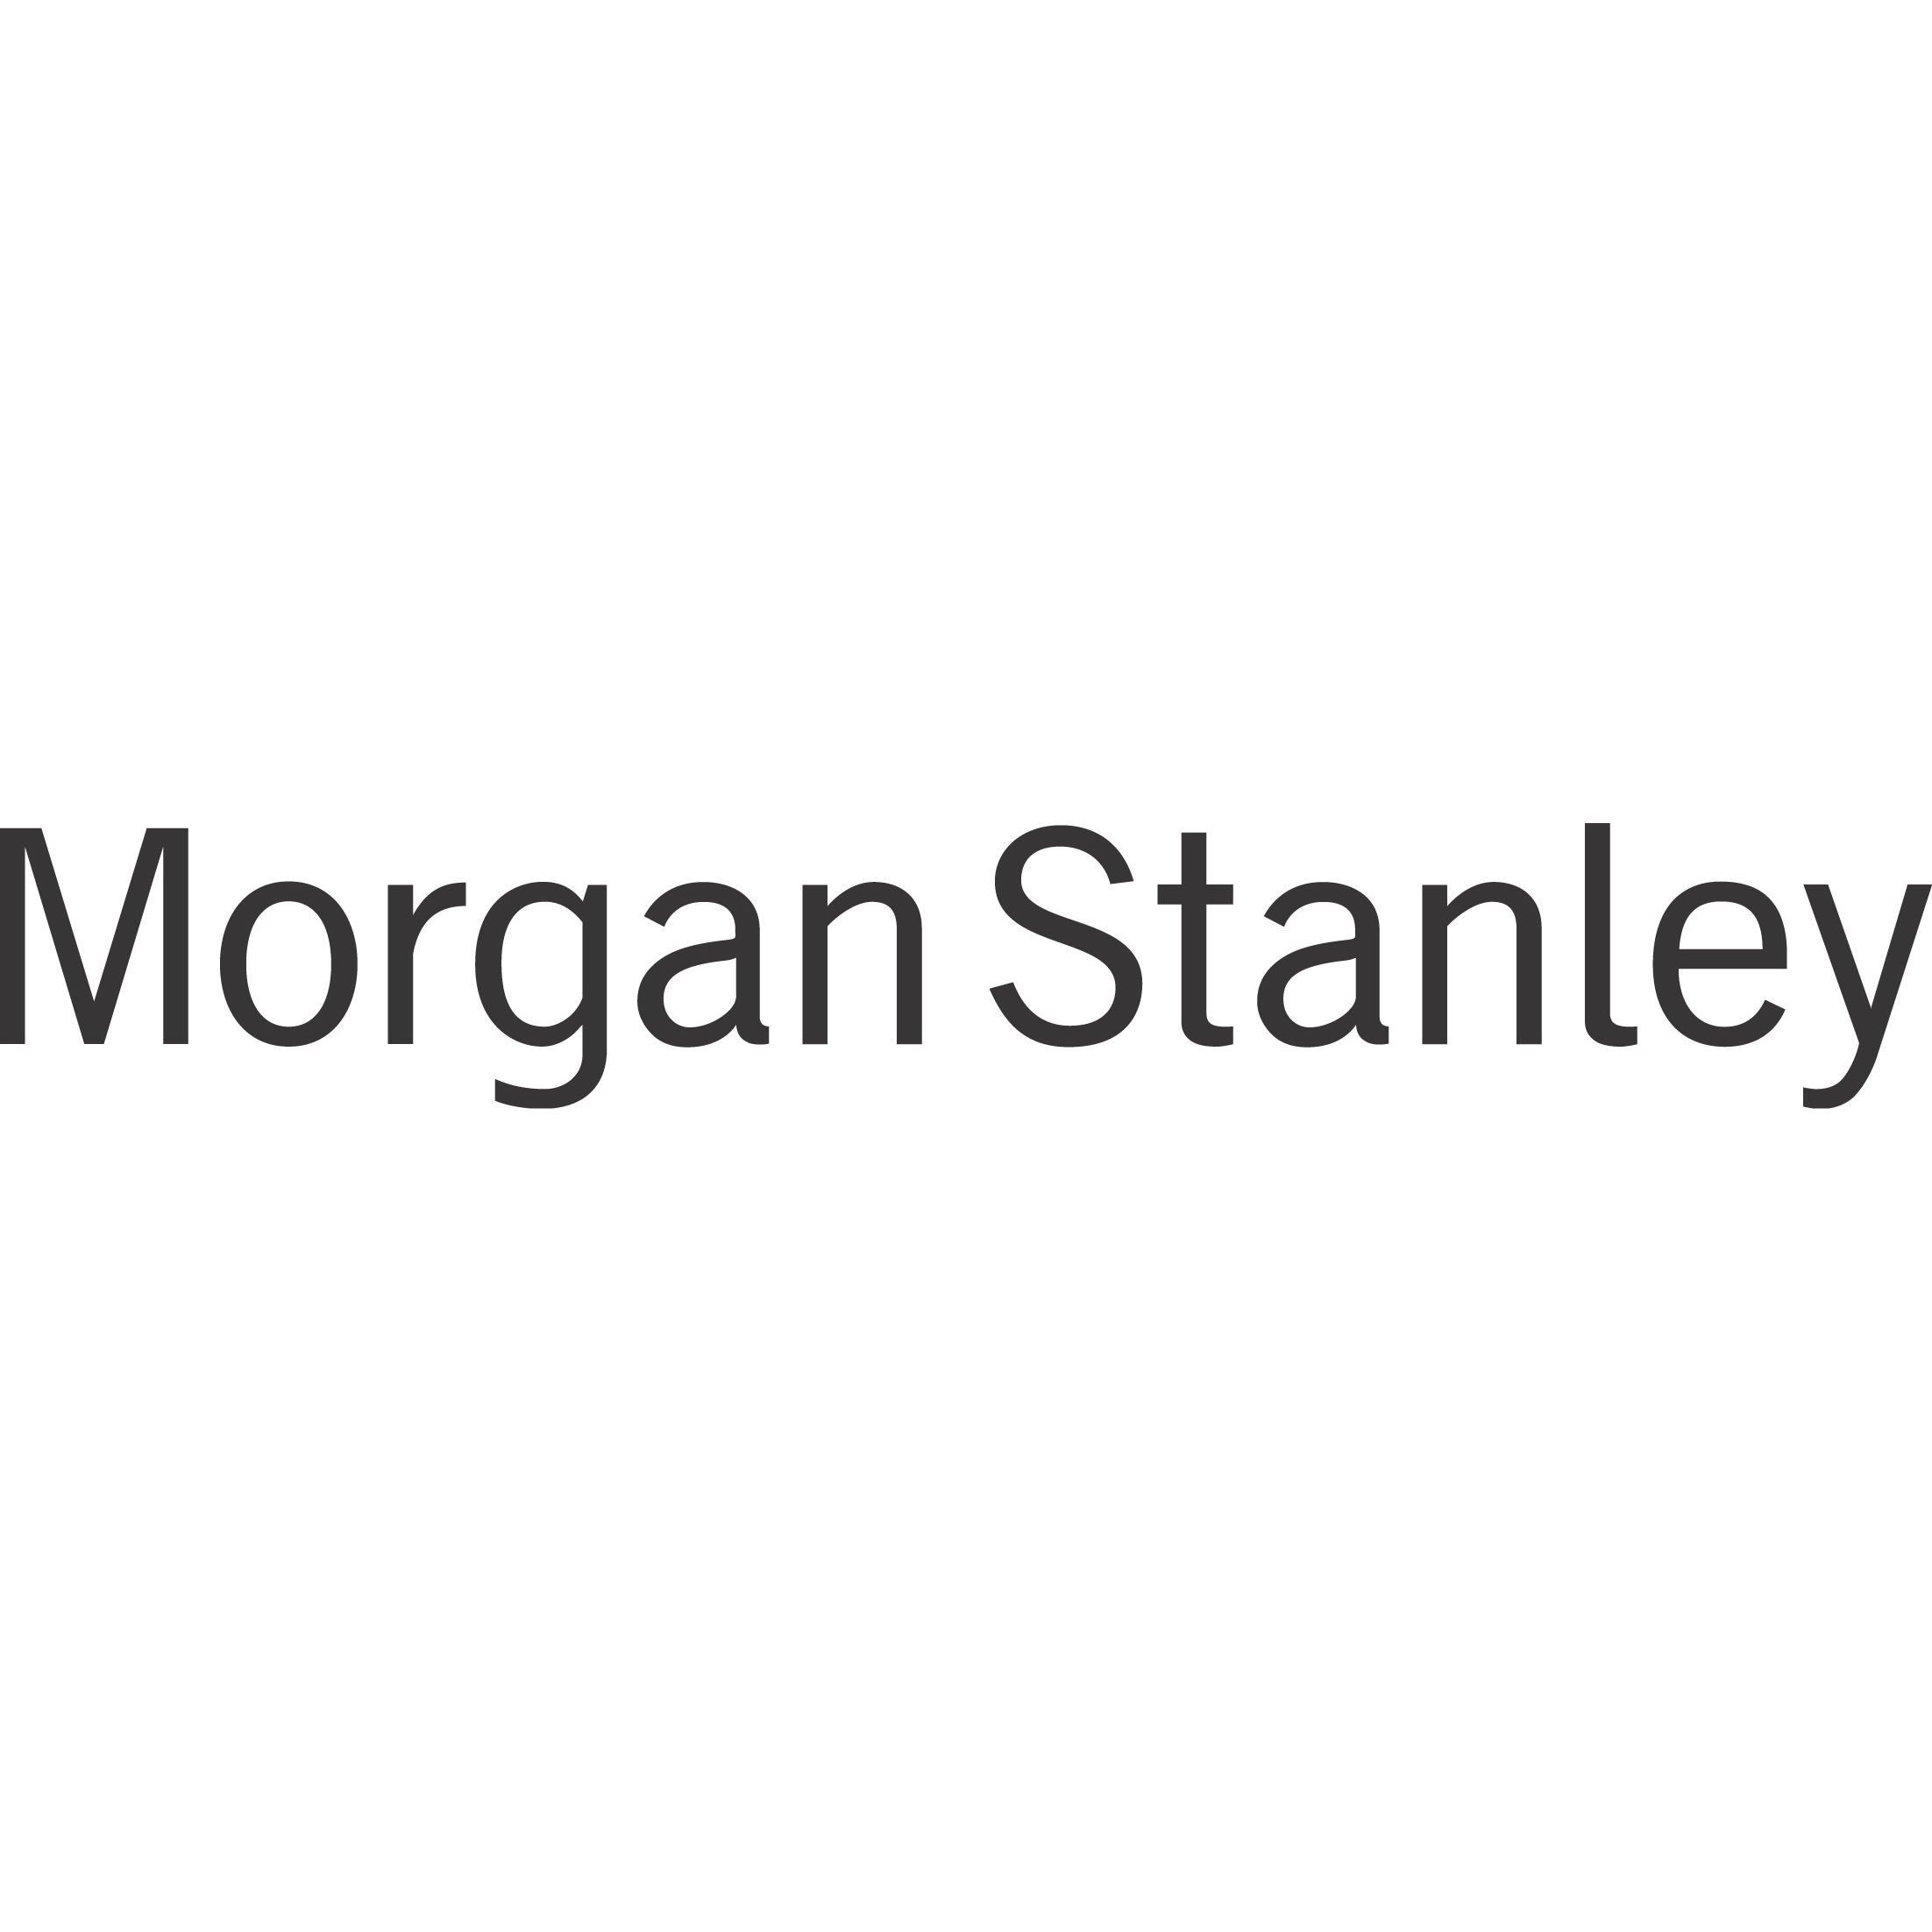 Nicholas Charette - Morgan Stanley | Financial Advisor in Morristown,New Jersey